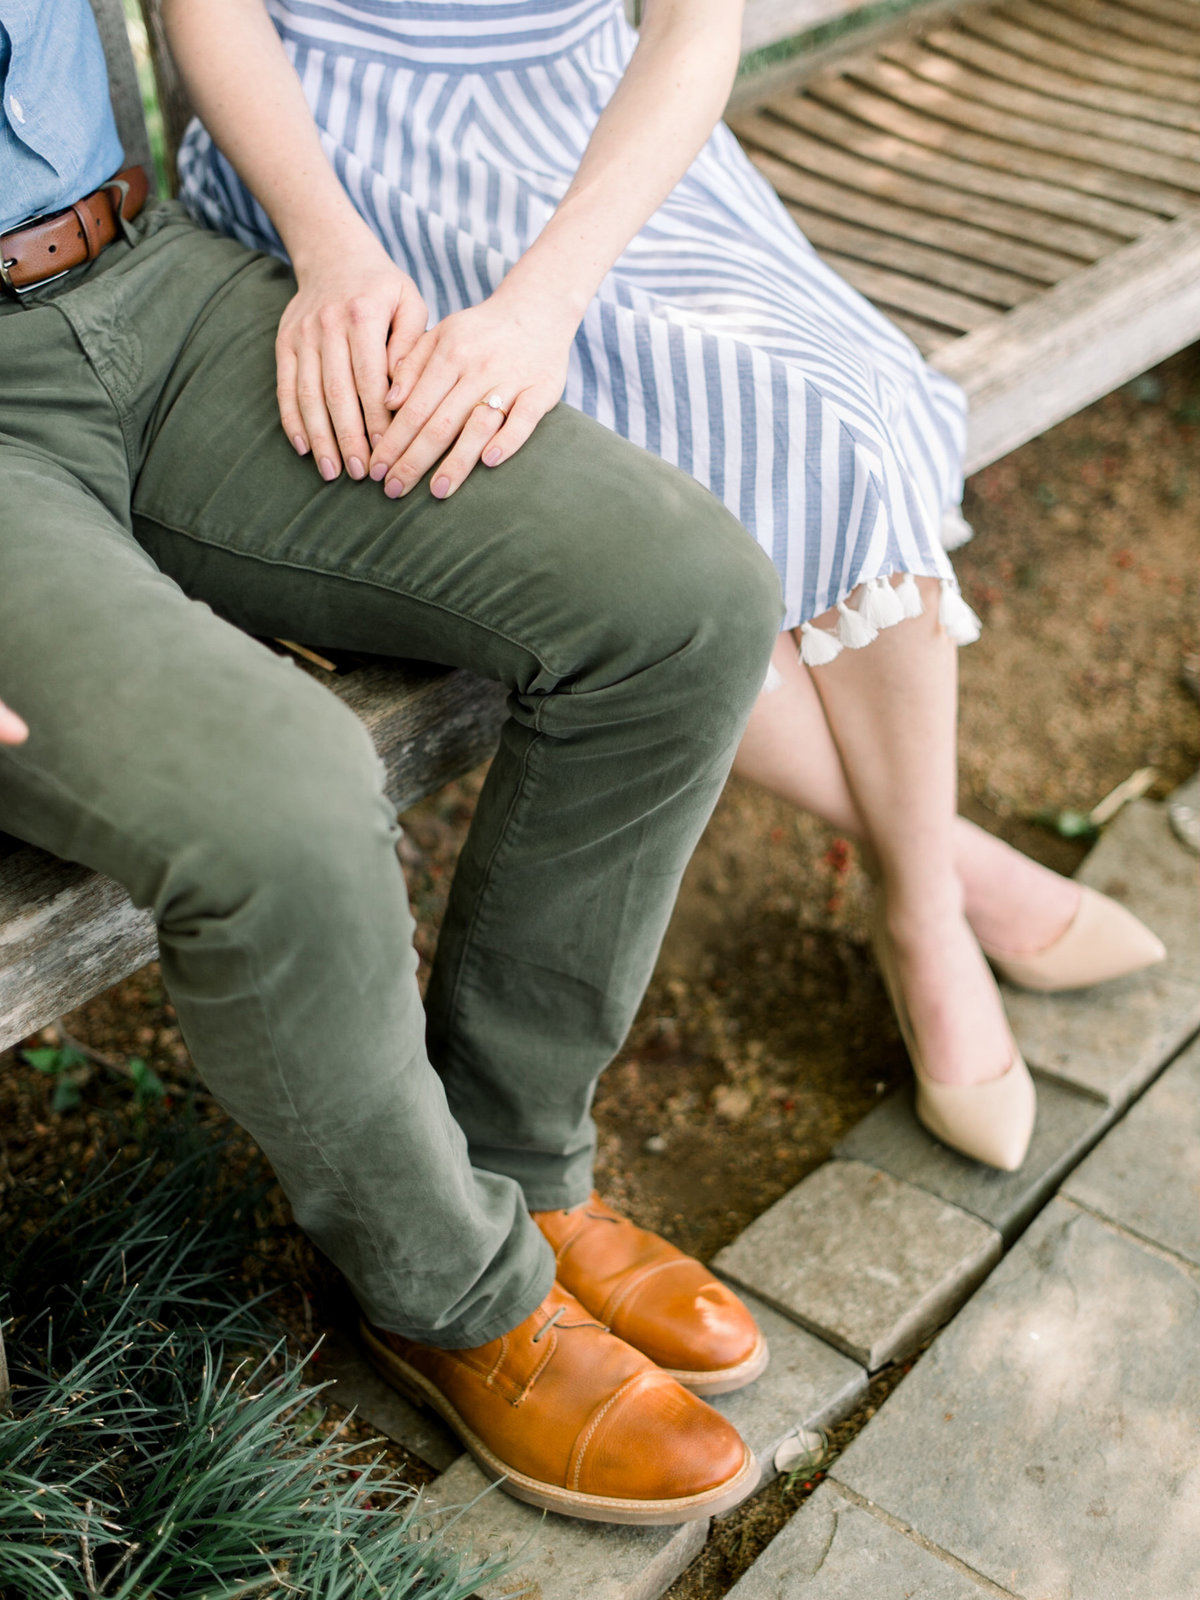 Courtney Hanson Photography - Dallas Spring Engagement Photos at Dallas Arboretum-2623